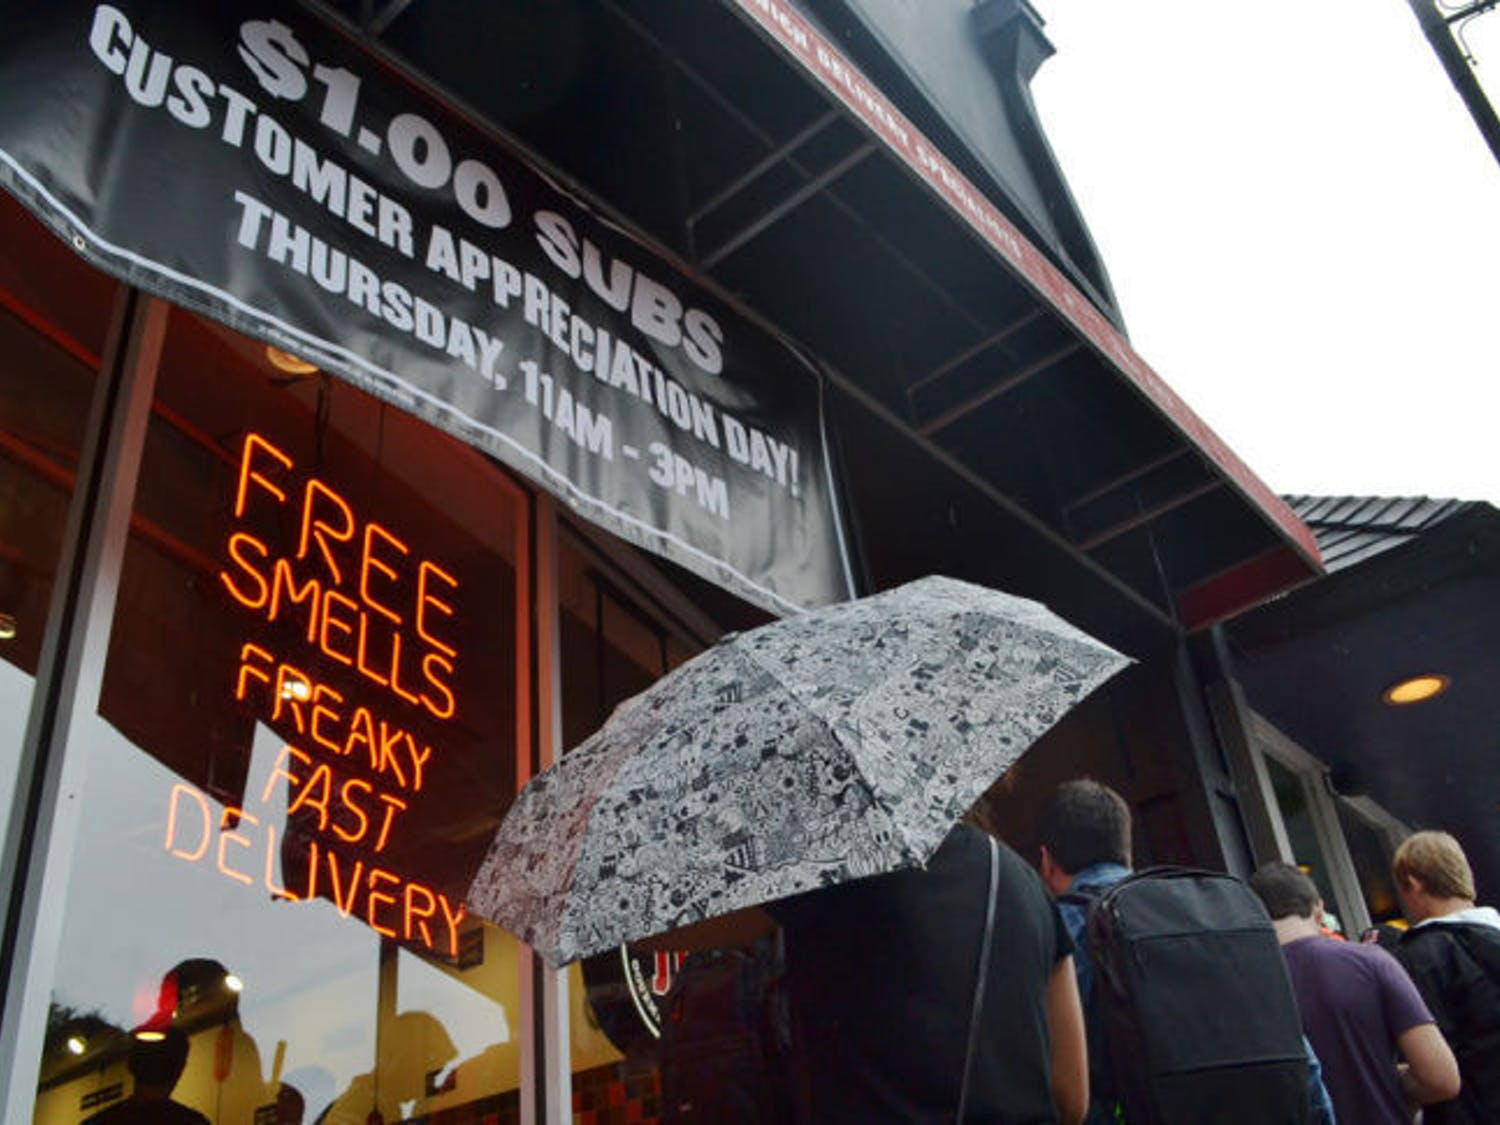 The rain didn't stop students from gathering around Midtown's Jimmy John's Gourmet Sandwiches location Thursday for Customer Appreciation Day. Until 3 p.m., the restaurant was selling the first six menu items for $1.